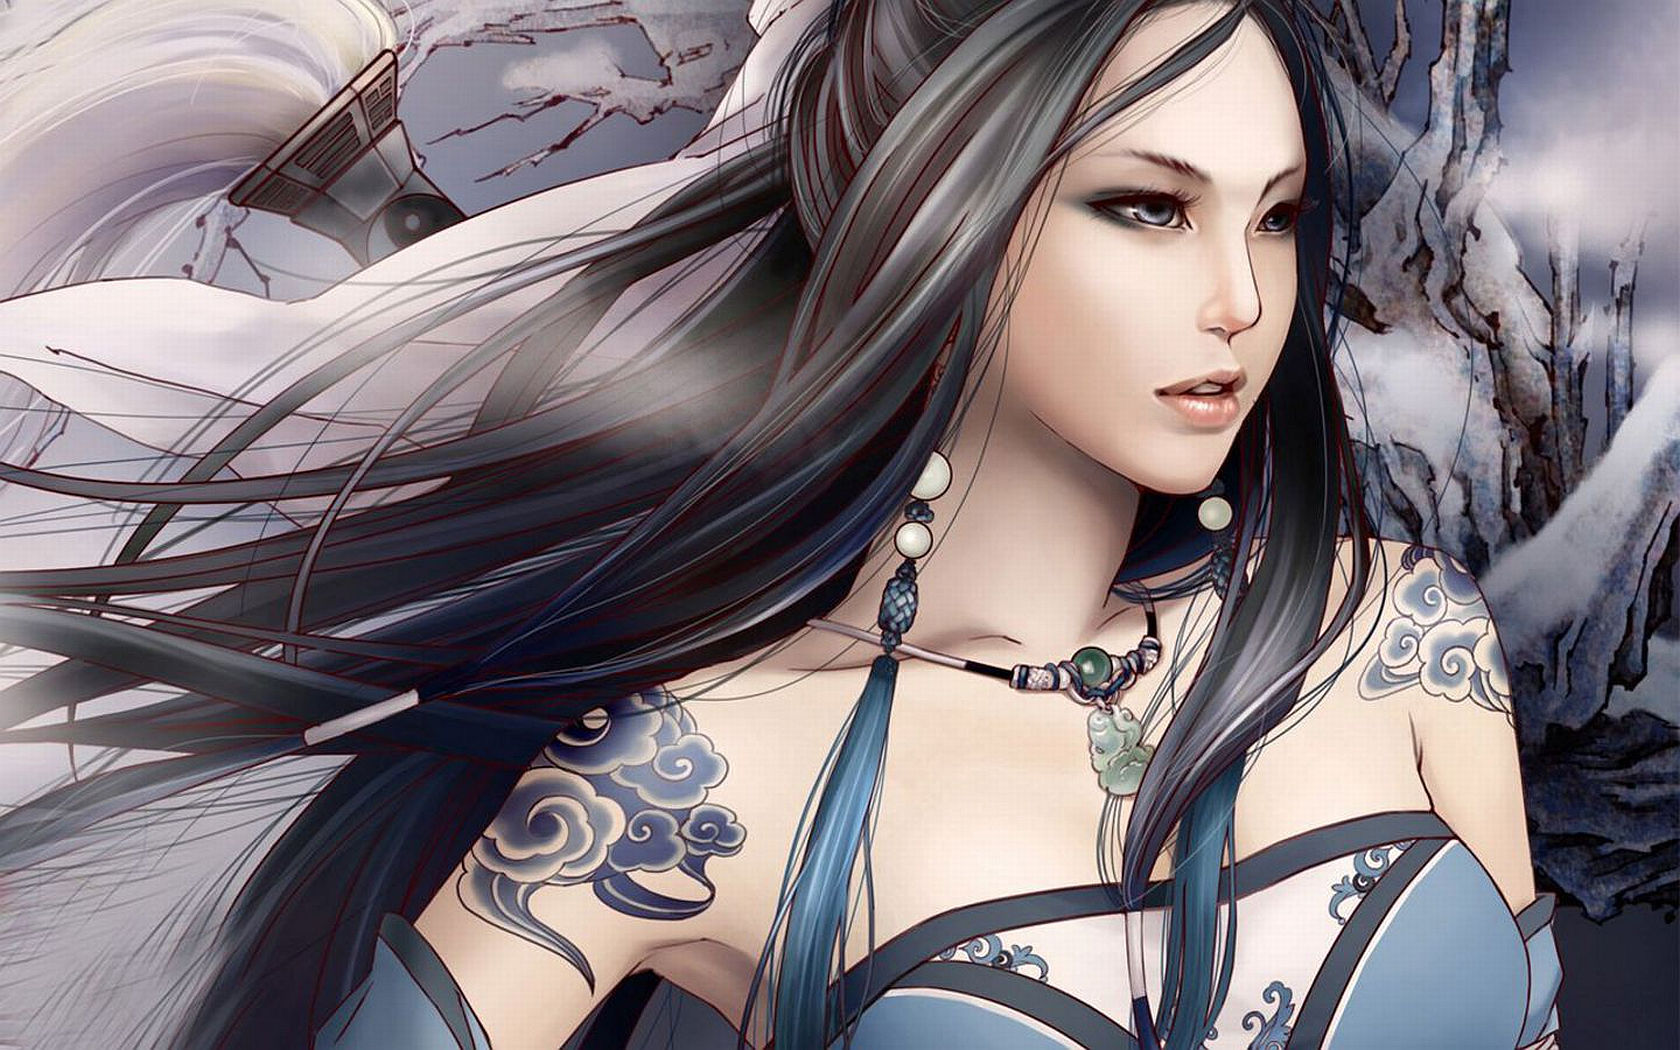 Fantasy - Tattoo  - Chaos - Dark - Wind - Girl - Asian - Blue Wallpaper